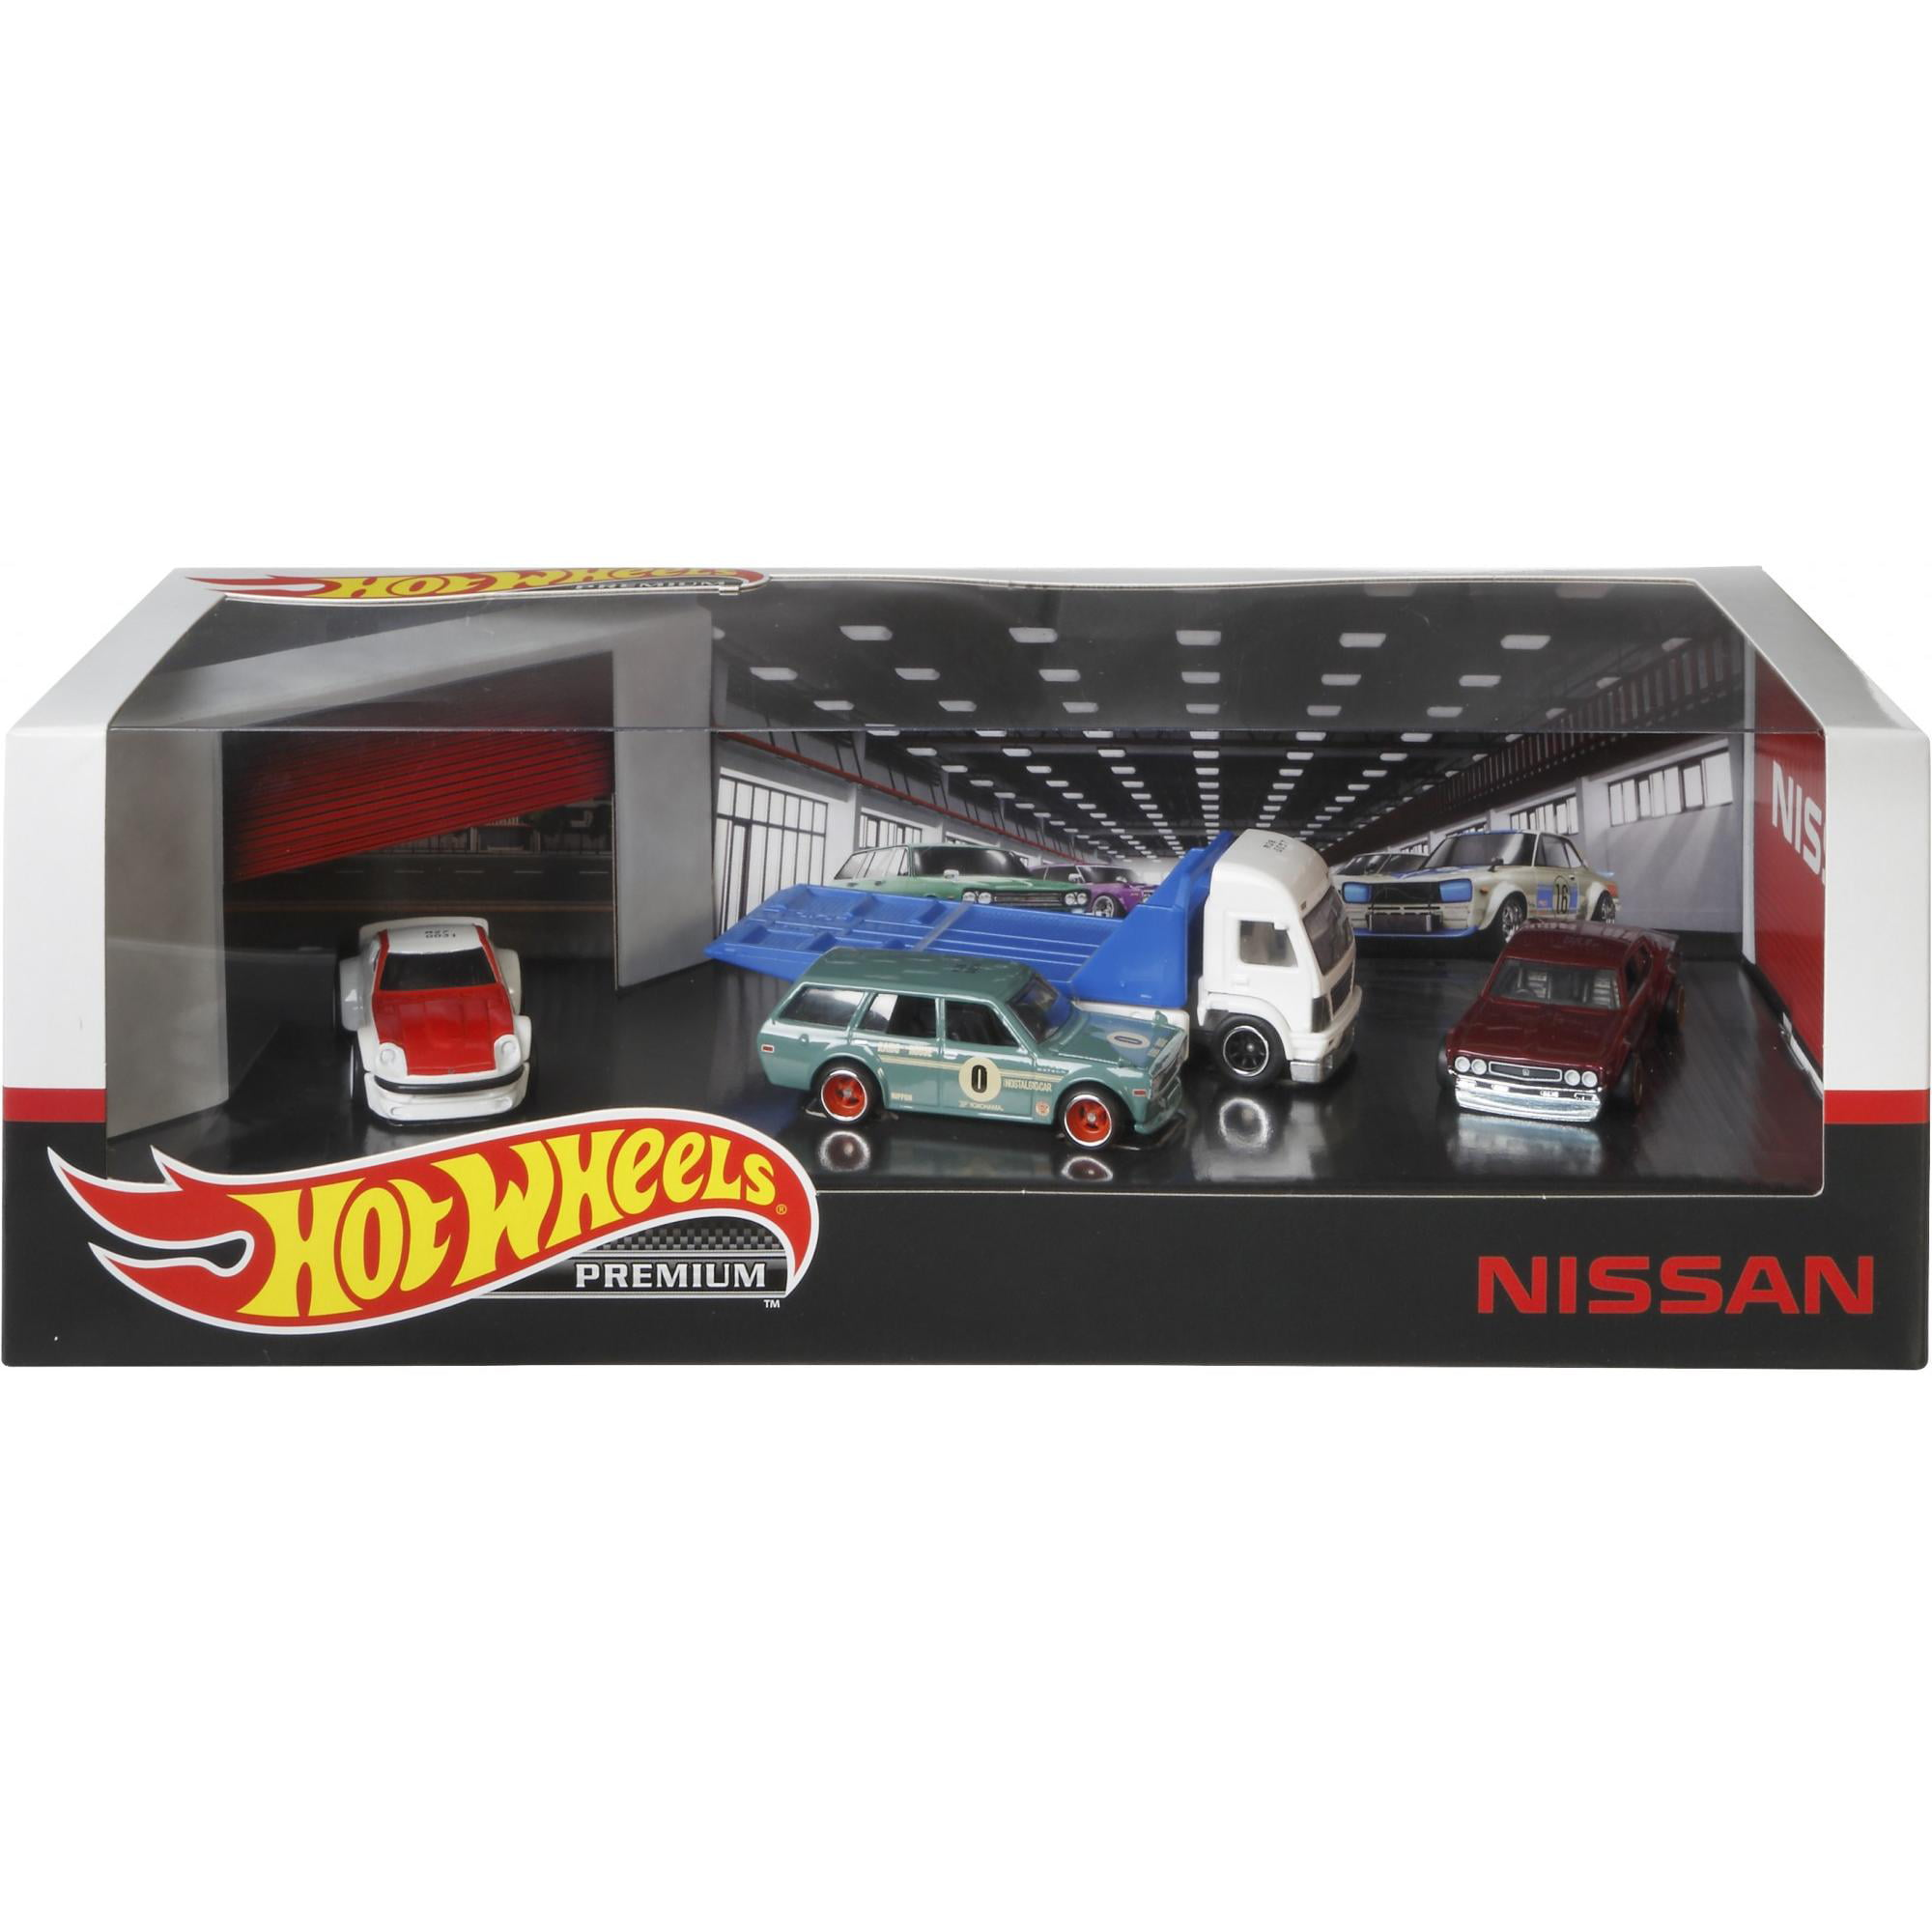 Hot Wheels Premium Collect Display Sets With 3 1:64 Scale Die-Cast Cars & 1 Team Transport Vehicle Collectors Favorites (Styles May Vary)